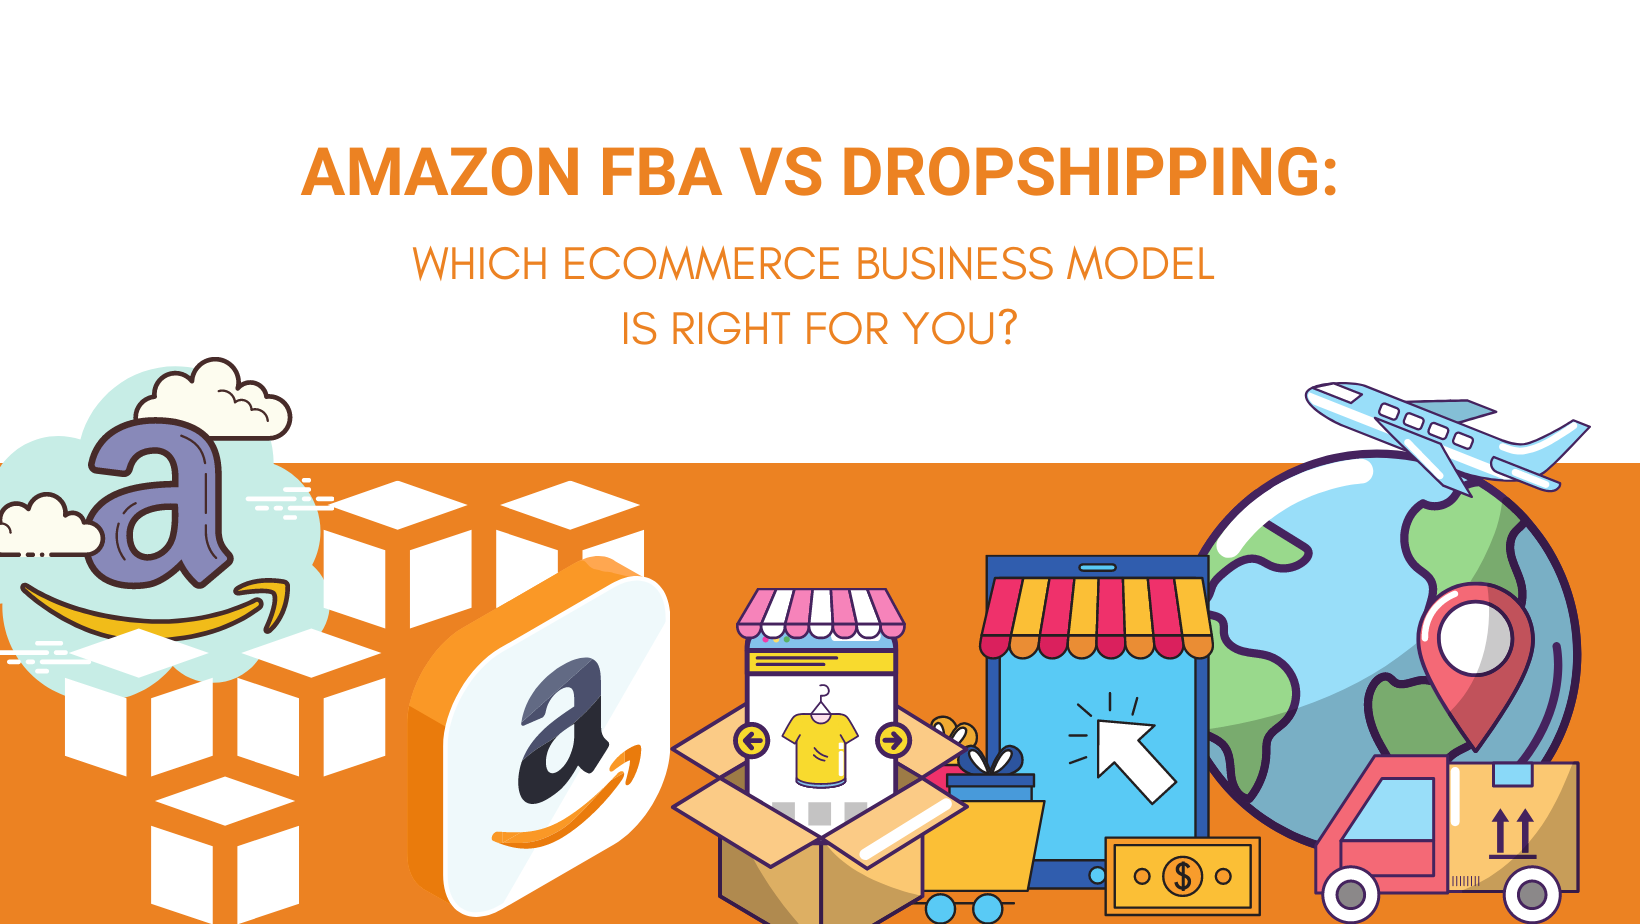 AMAZON FBA VS DROPSHIPPING WHICH ECOMMERCE BUSINESS MODEL IS RIGHT FOR YOU